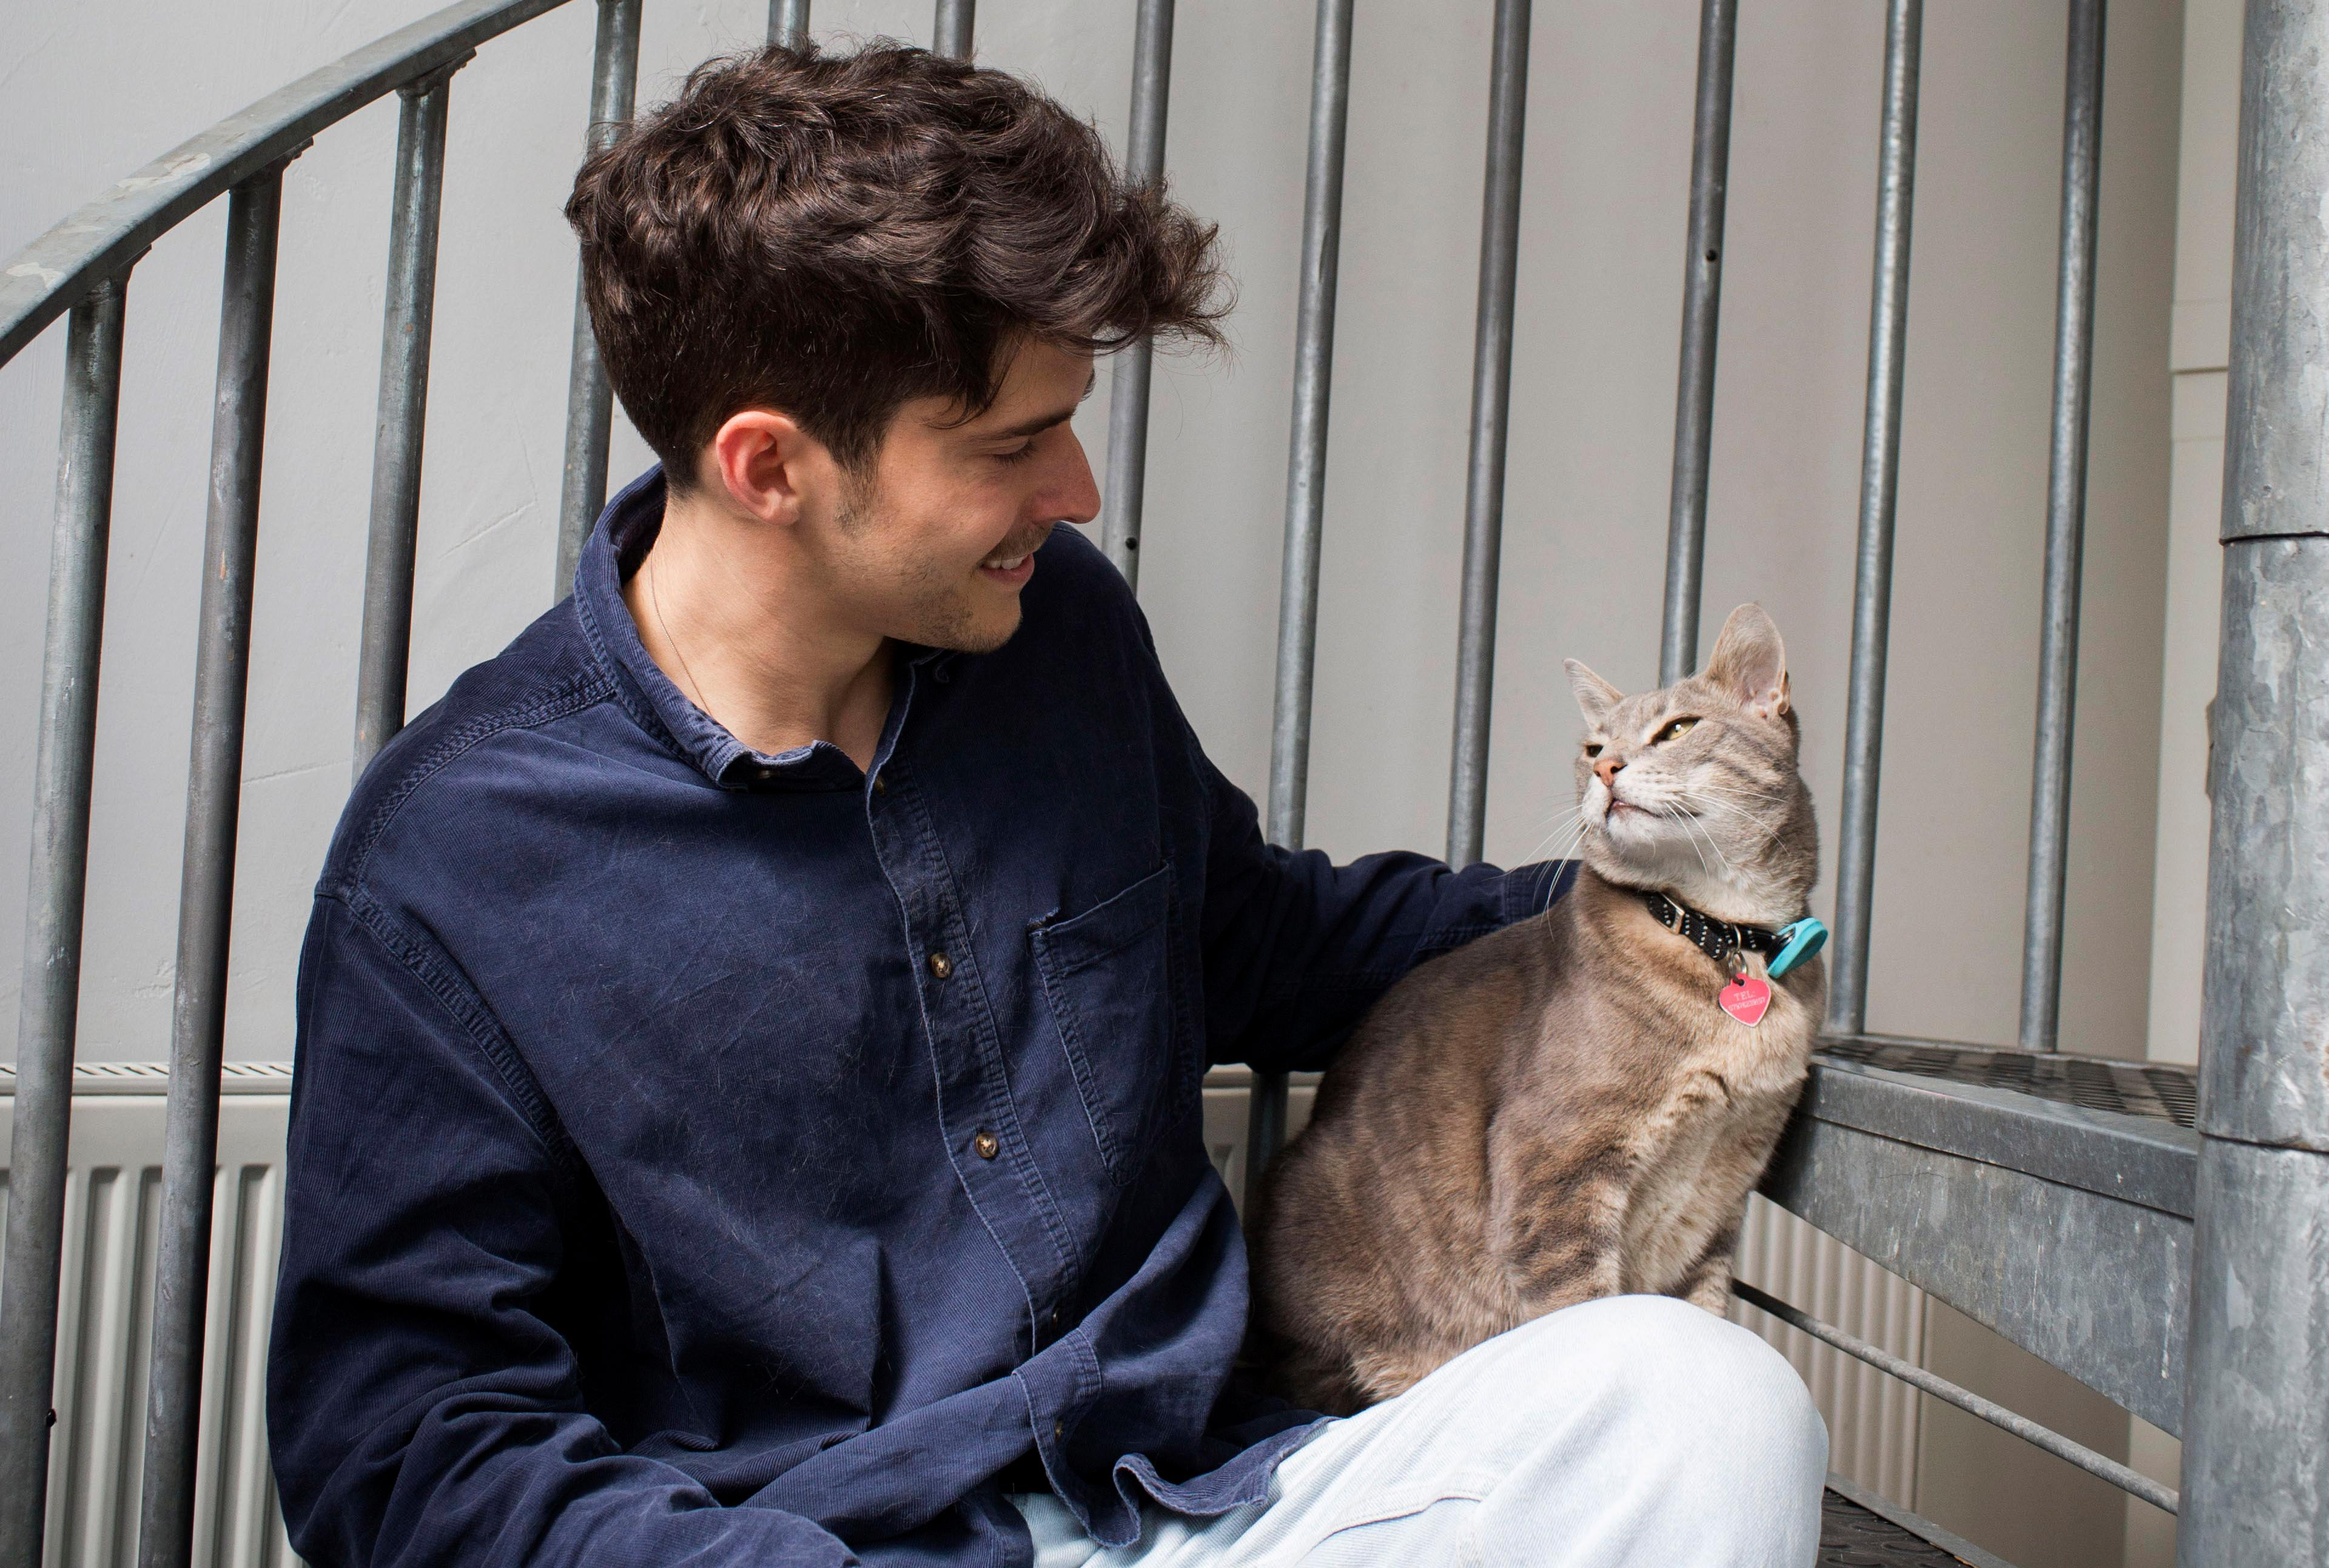 Experience: I'm a full-time cat sitter